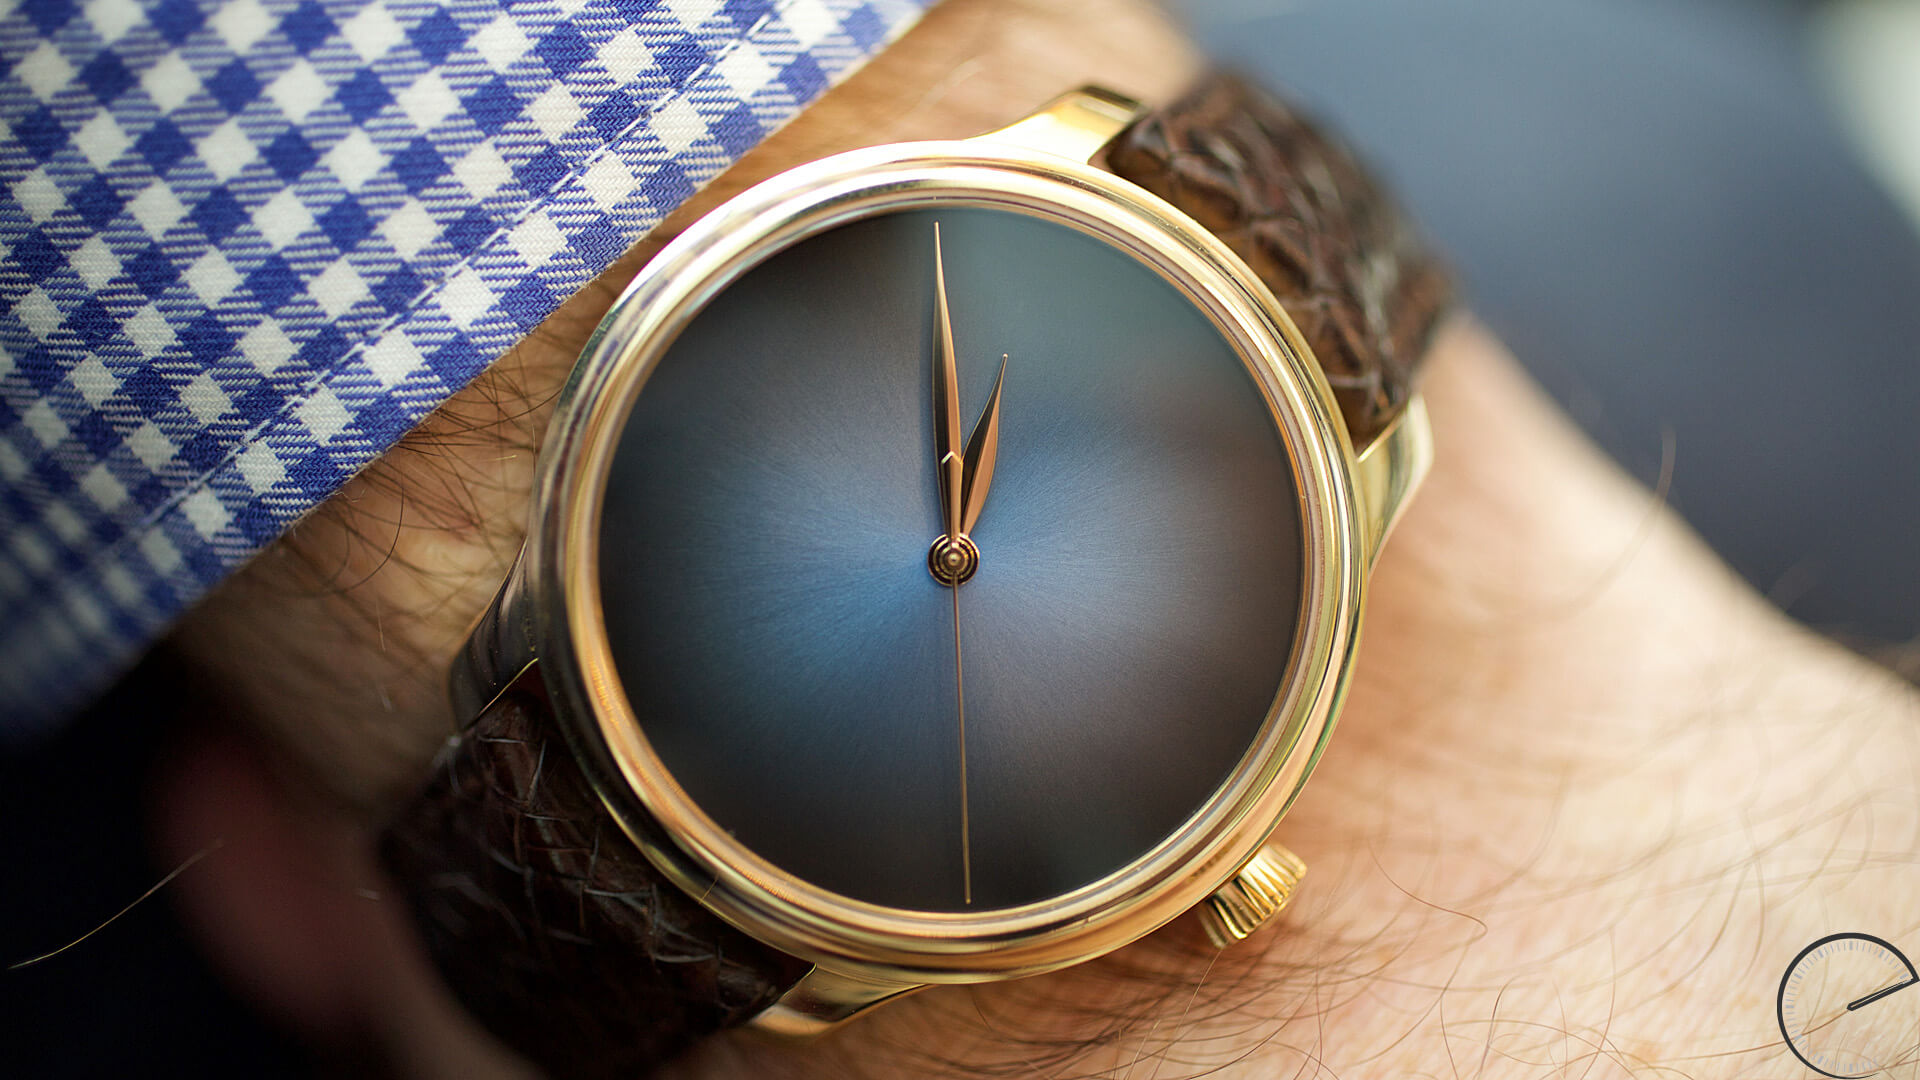 H. Moser & Cie Concept watches